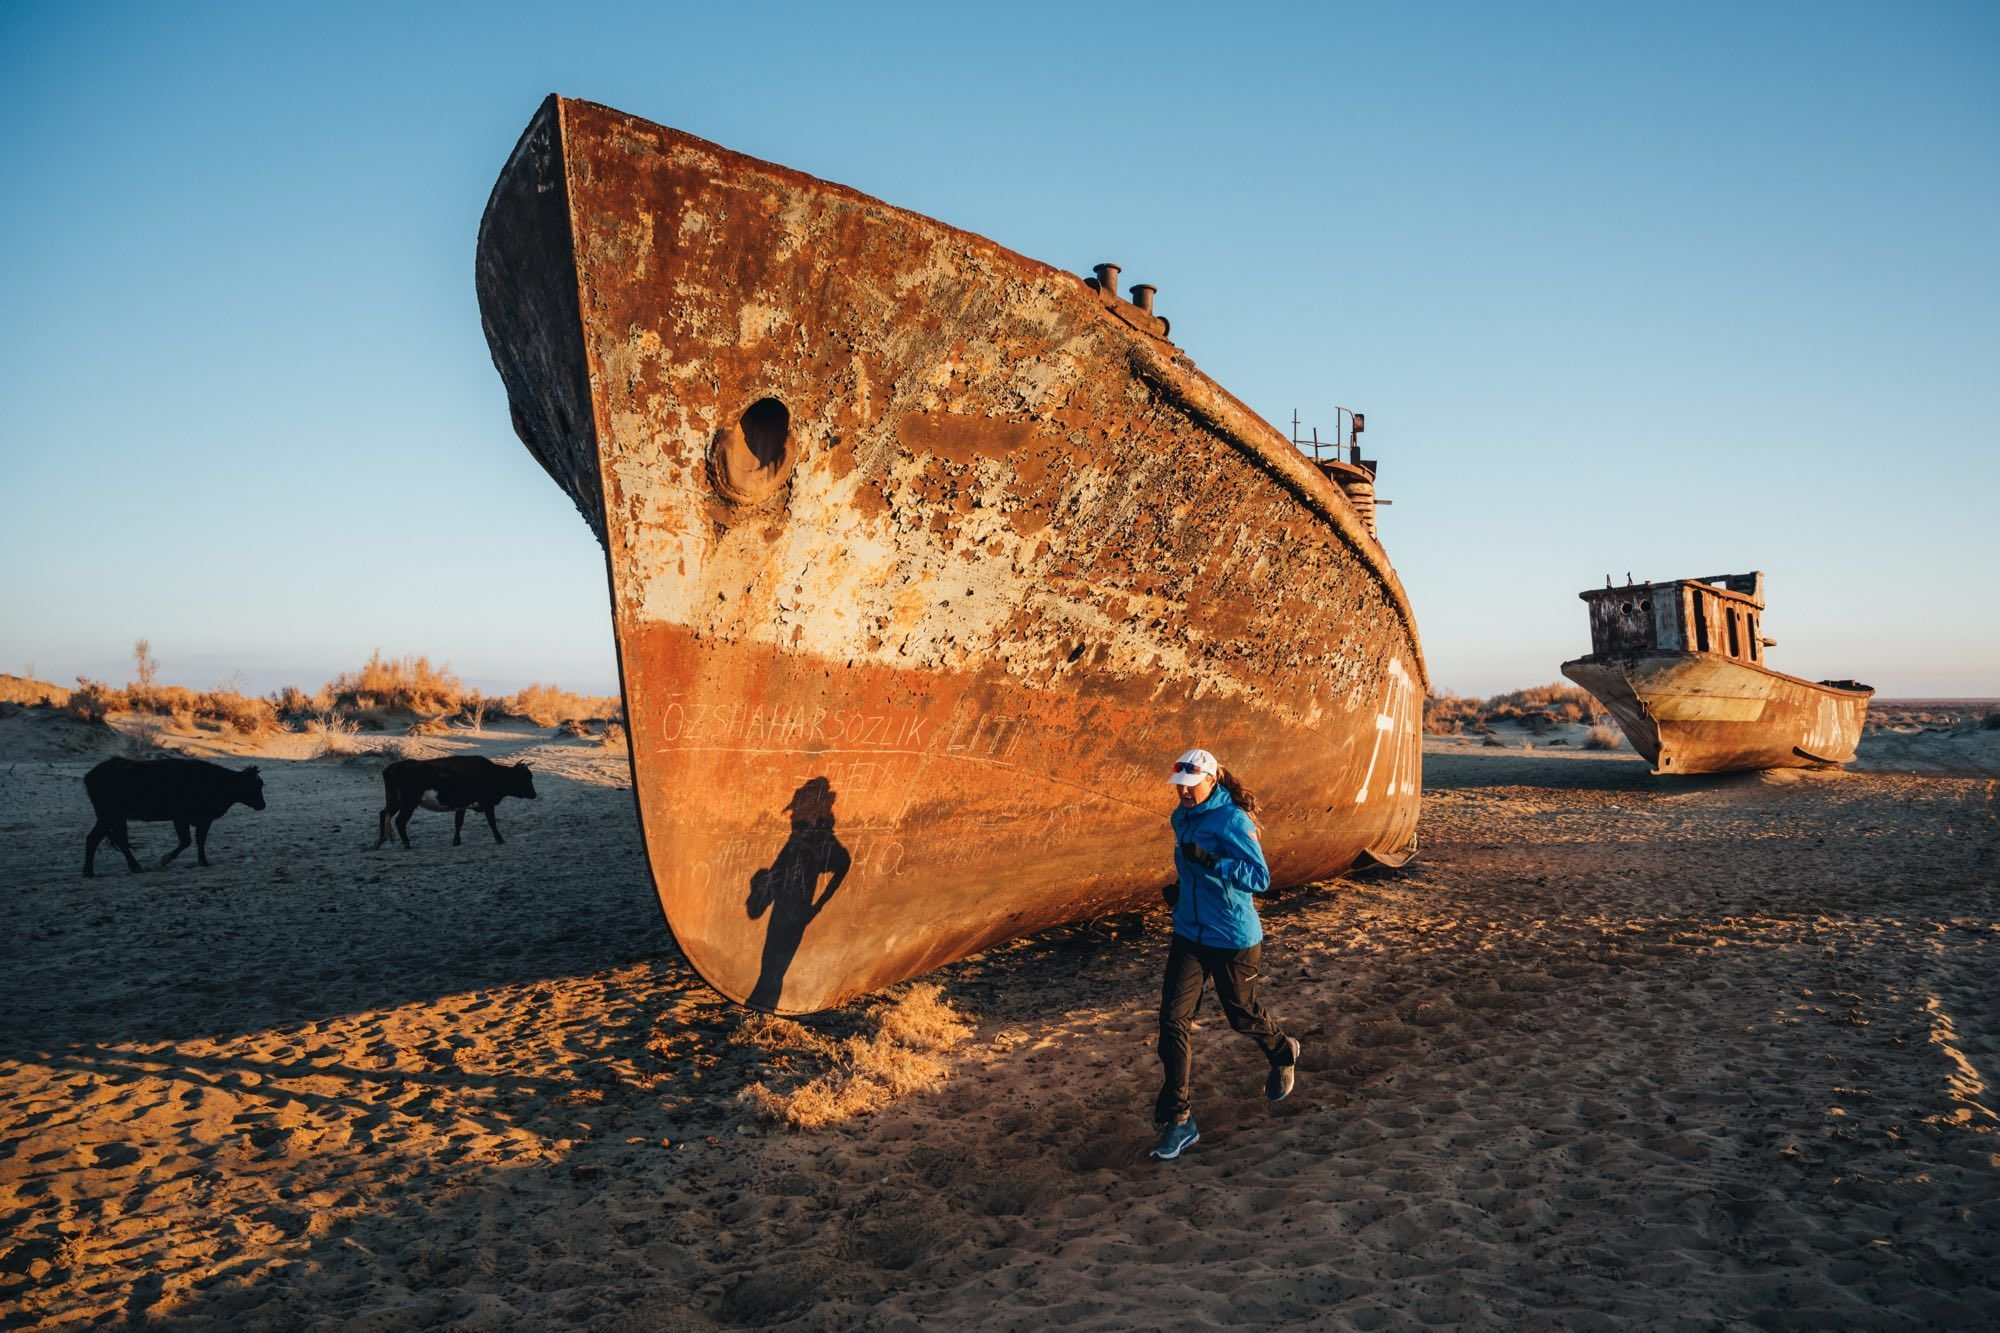 Uzbekistan, ship graveyard near Muynak - in the 70s the Aral Sea was here, of which 90% has dried up today